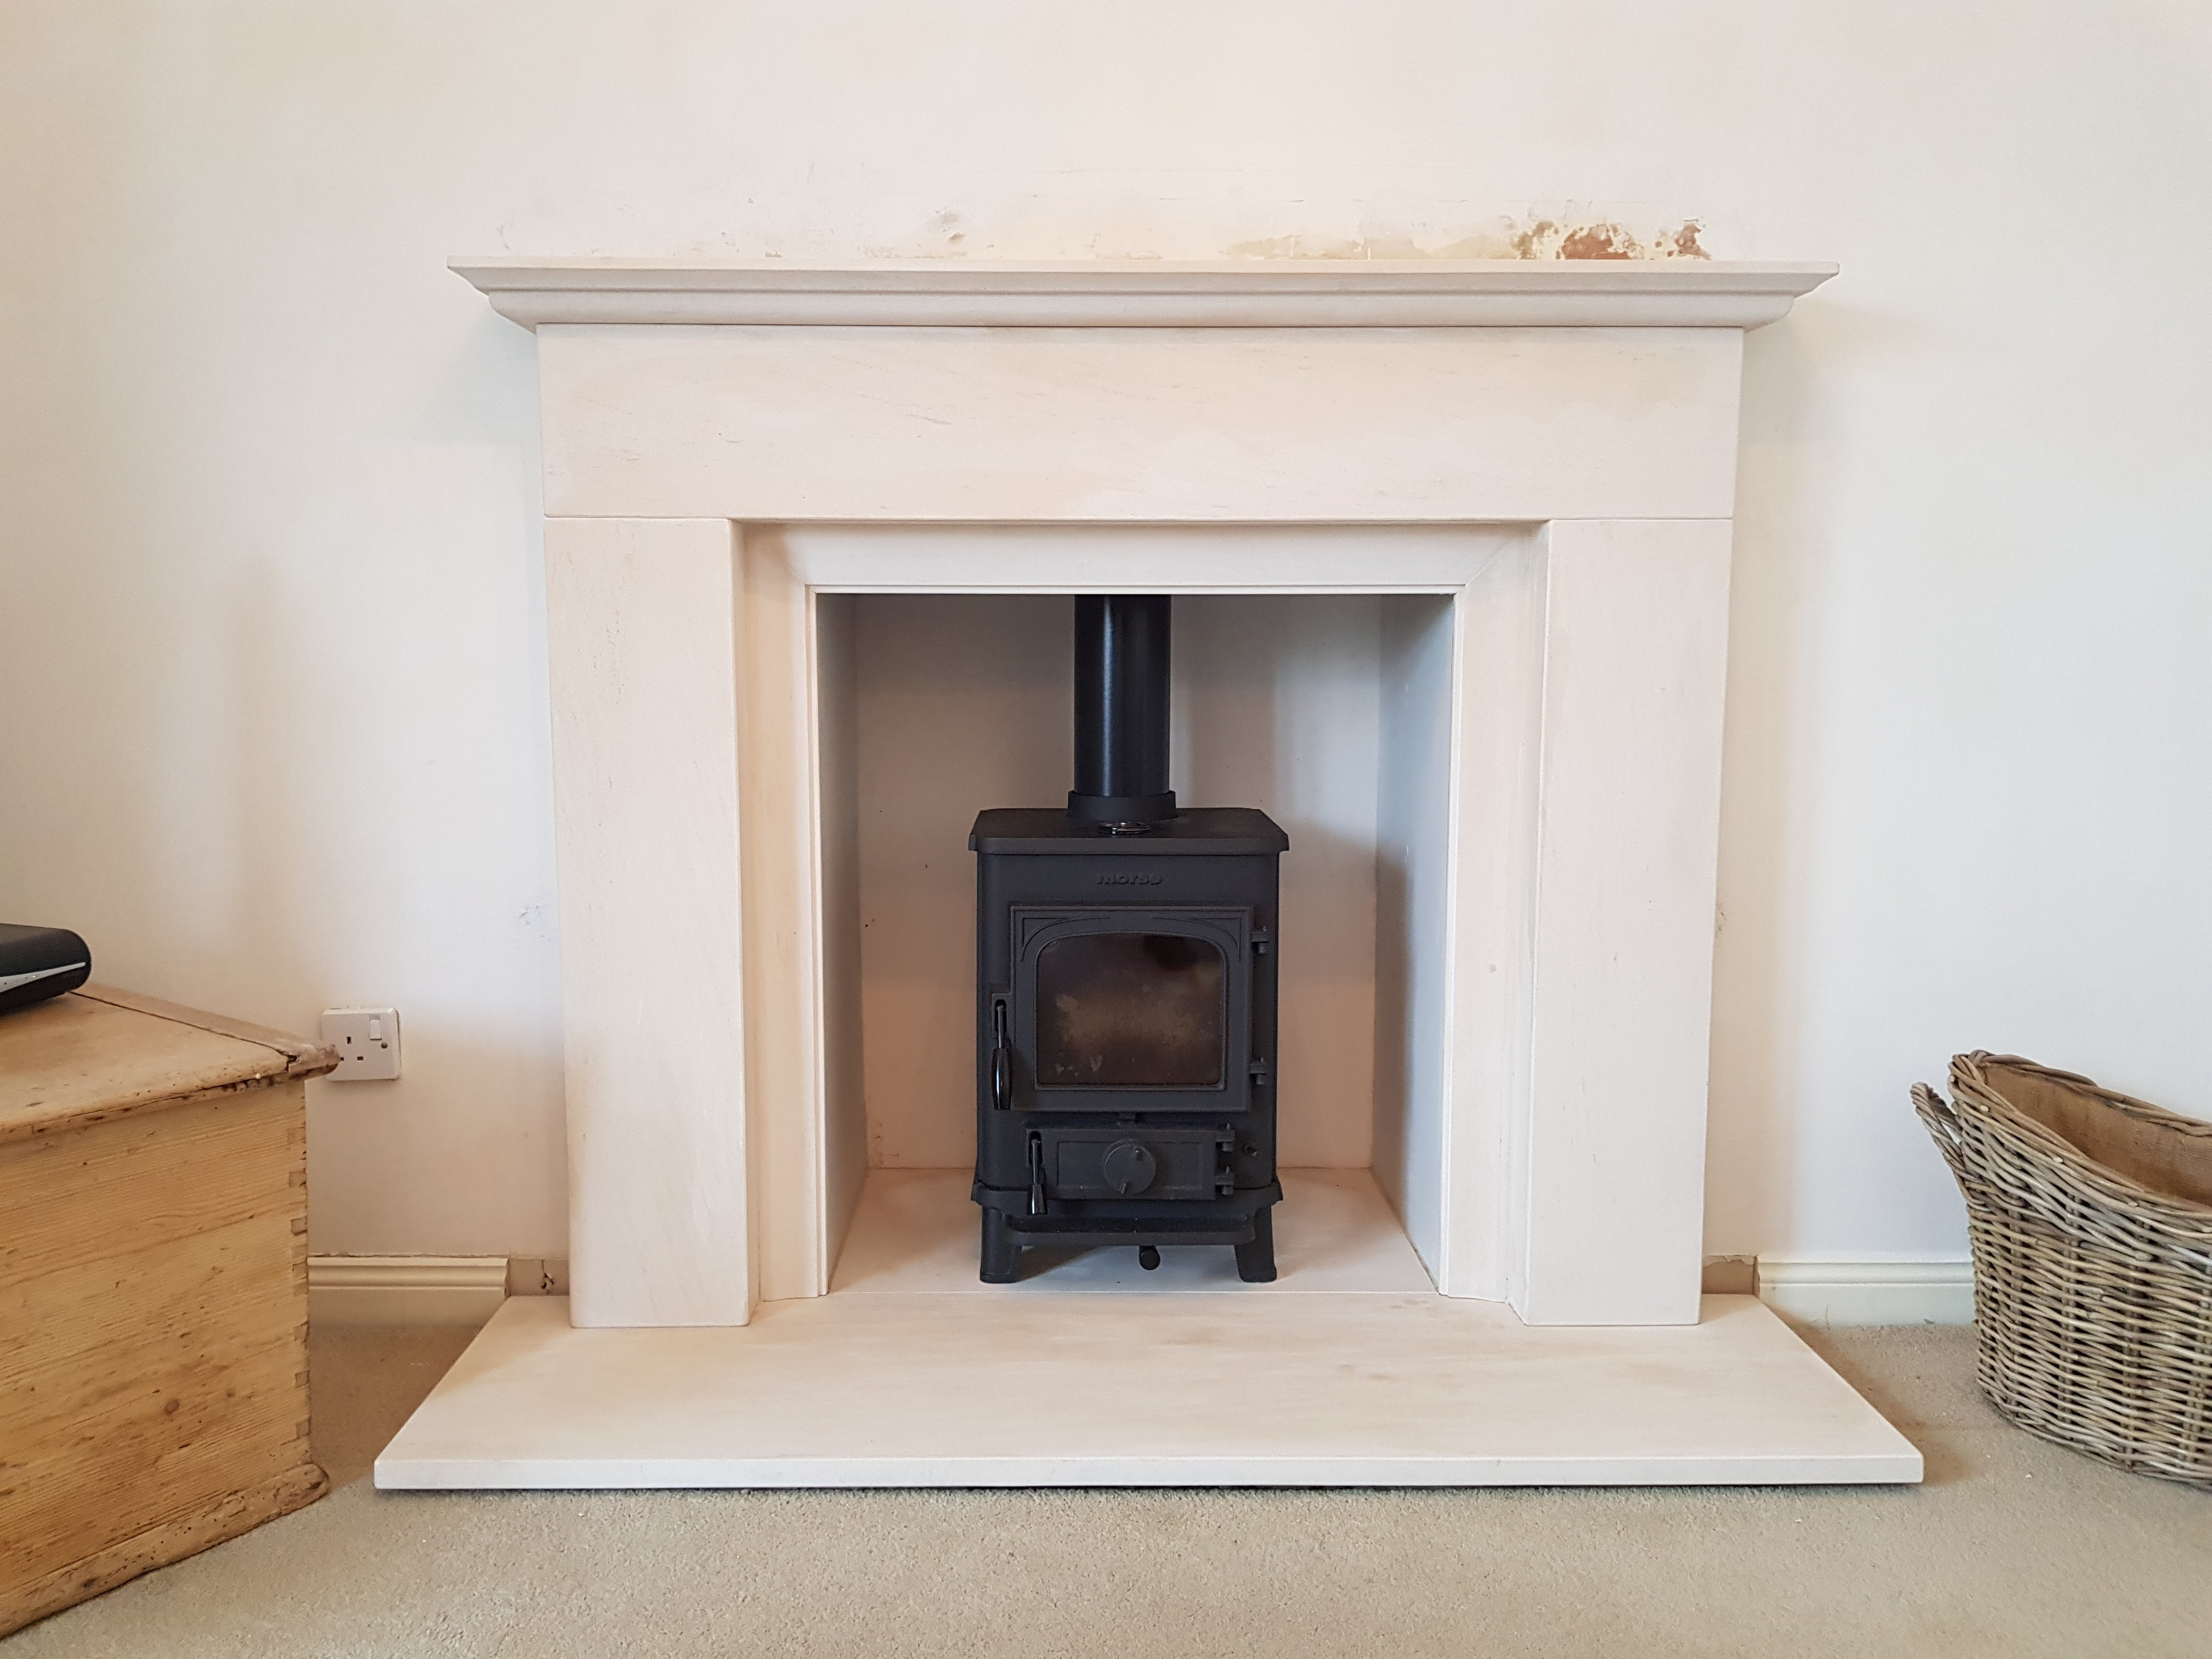 Morso Squirrel Stove installed in a limestone fireplace